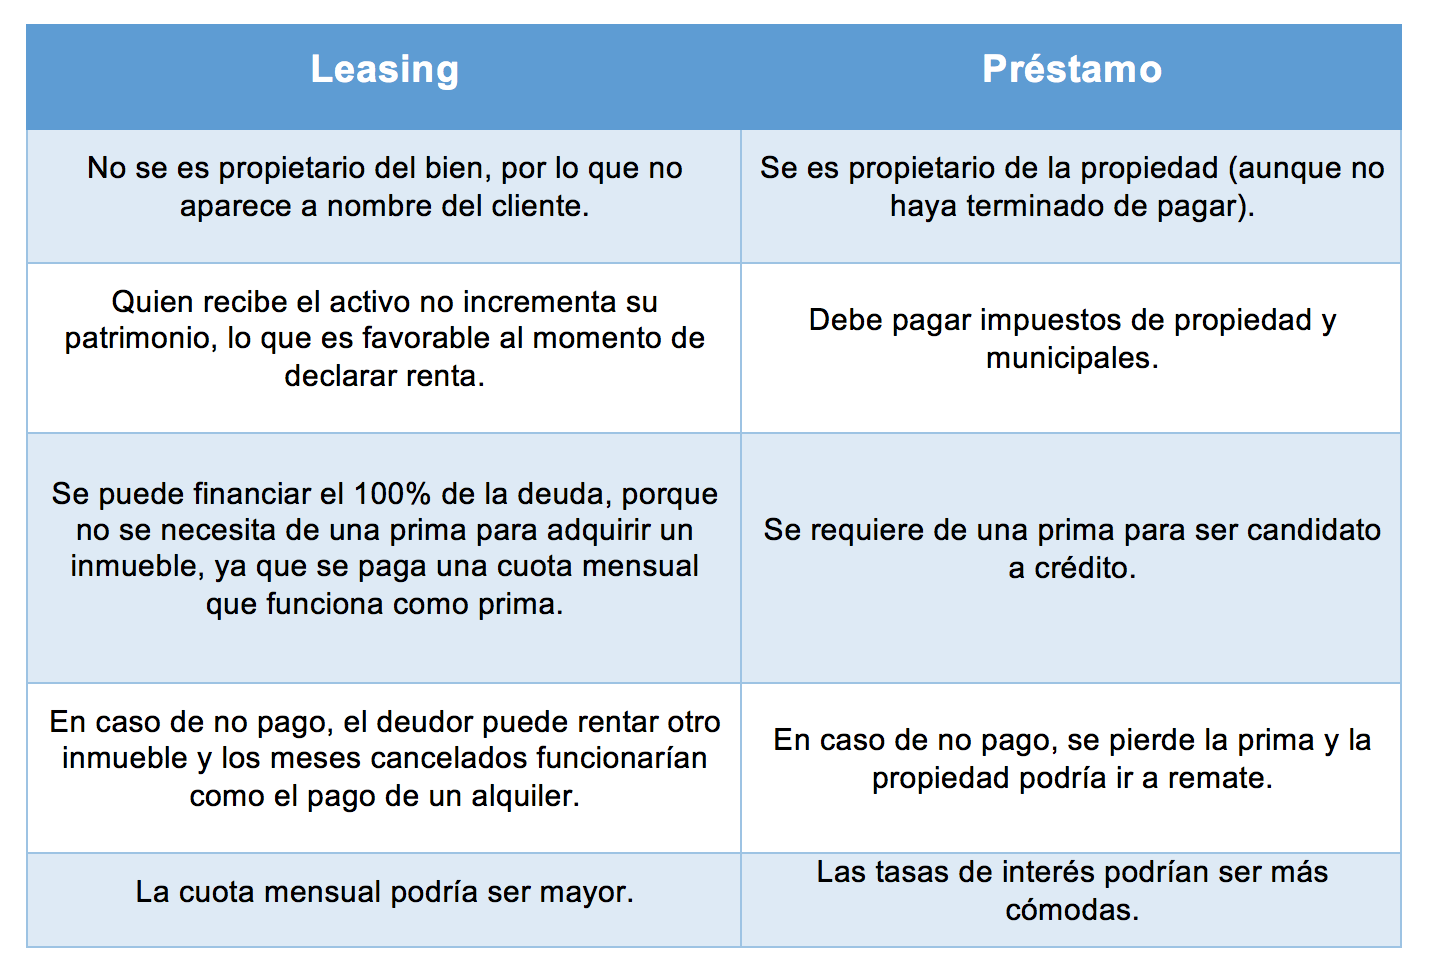 leasing comparaci'on